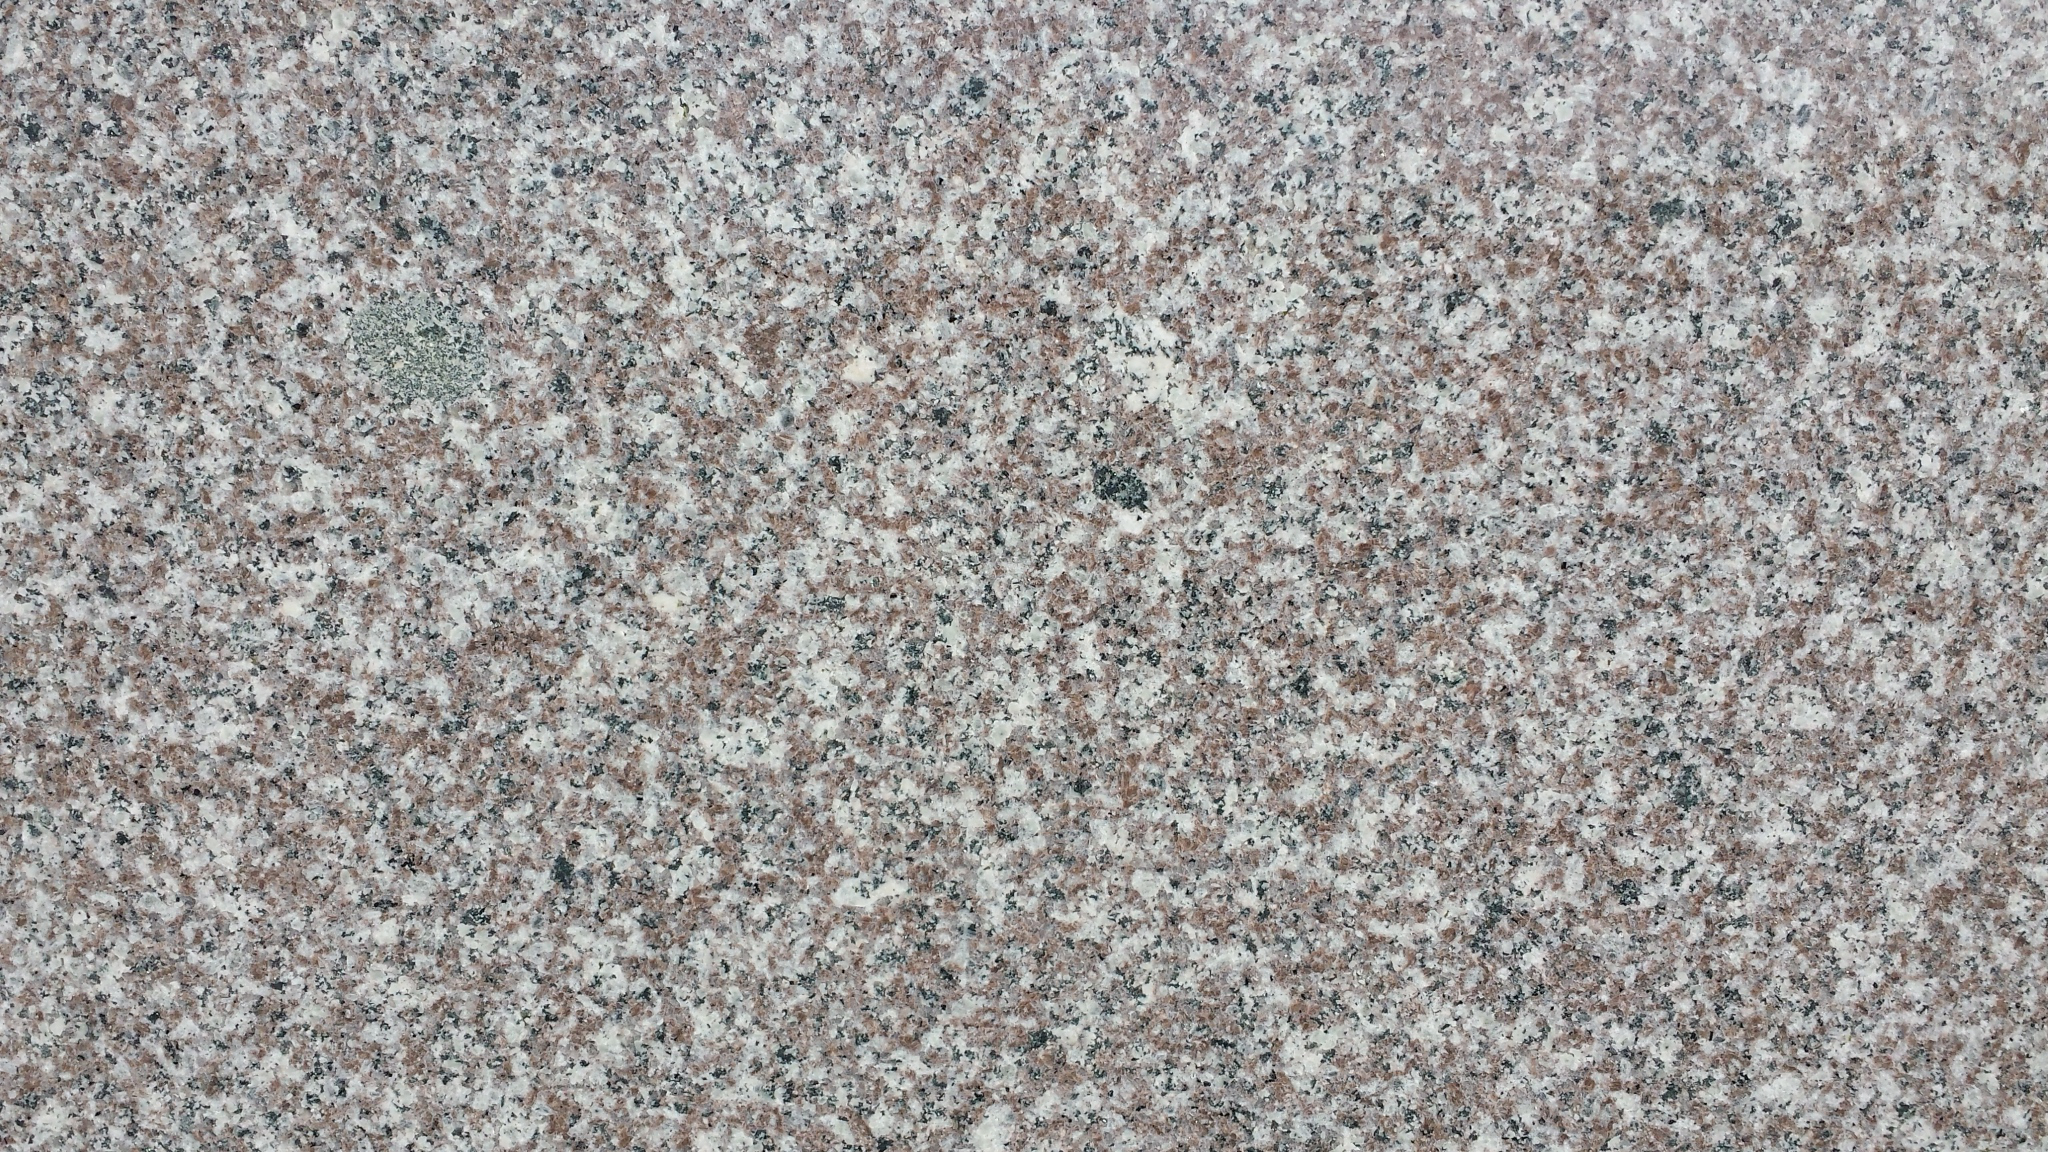 Marble Granite : The Granite and Marble Shop